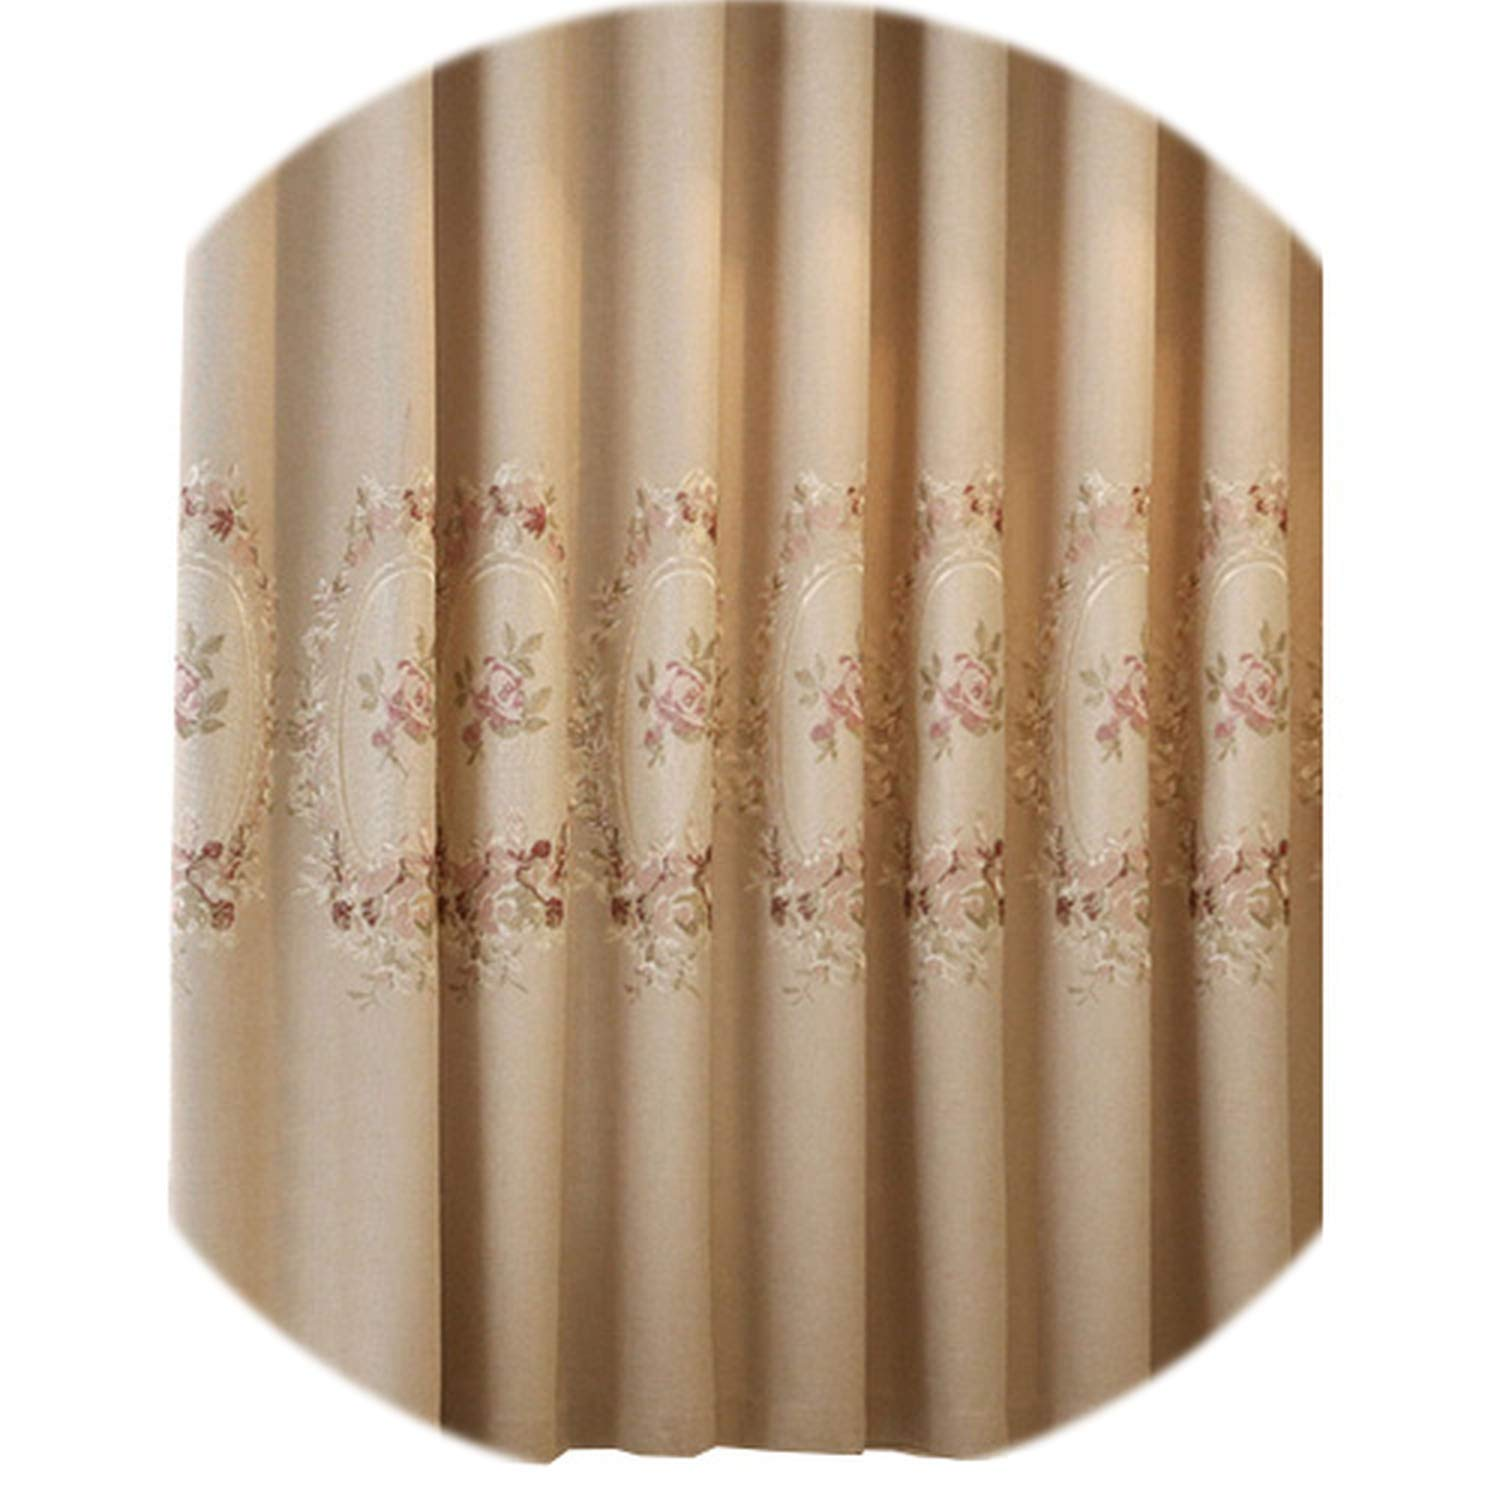 No Buy No Bye Blackout Curtains Faux Linen Embroidered Luxury Curtain Navy Blue Green Purple Floral Living Room Window Curtain Modern,Cream,W500cm L270cm,Pull Pleated Tape